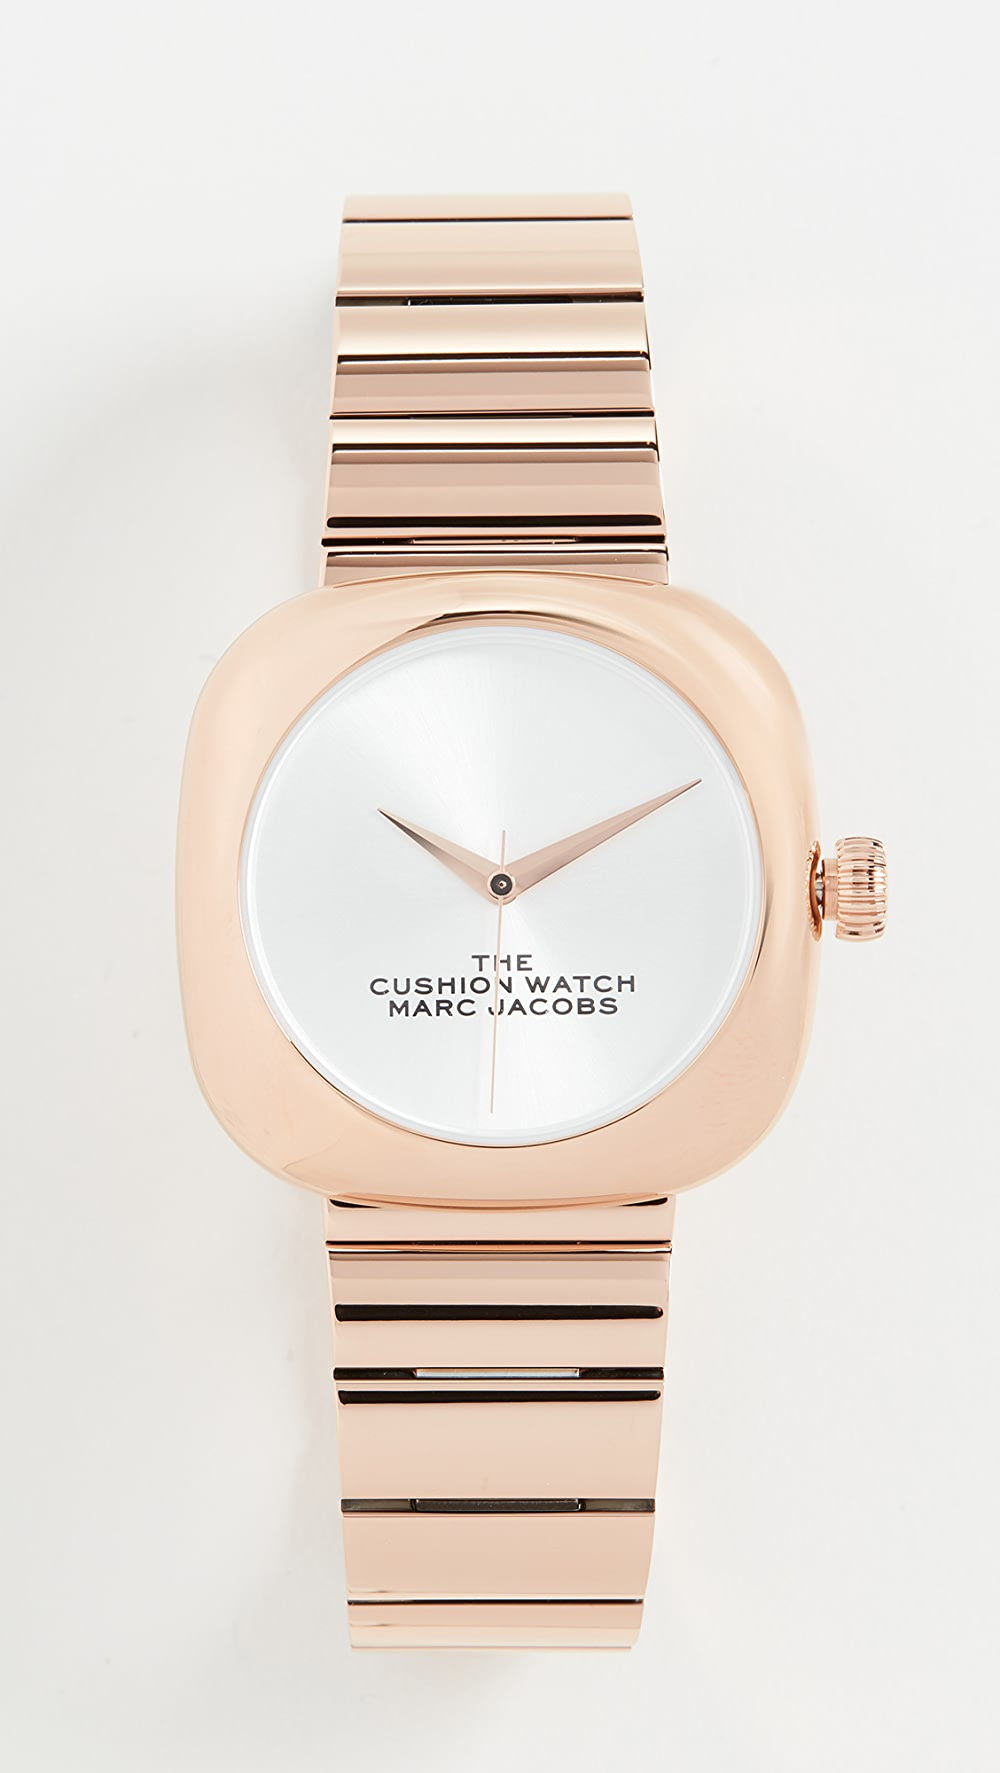 Honest The Marc Jacobs - The Cushion Watch Less Expensive